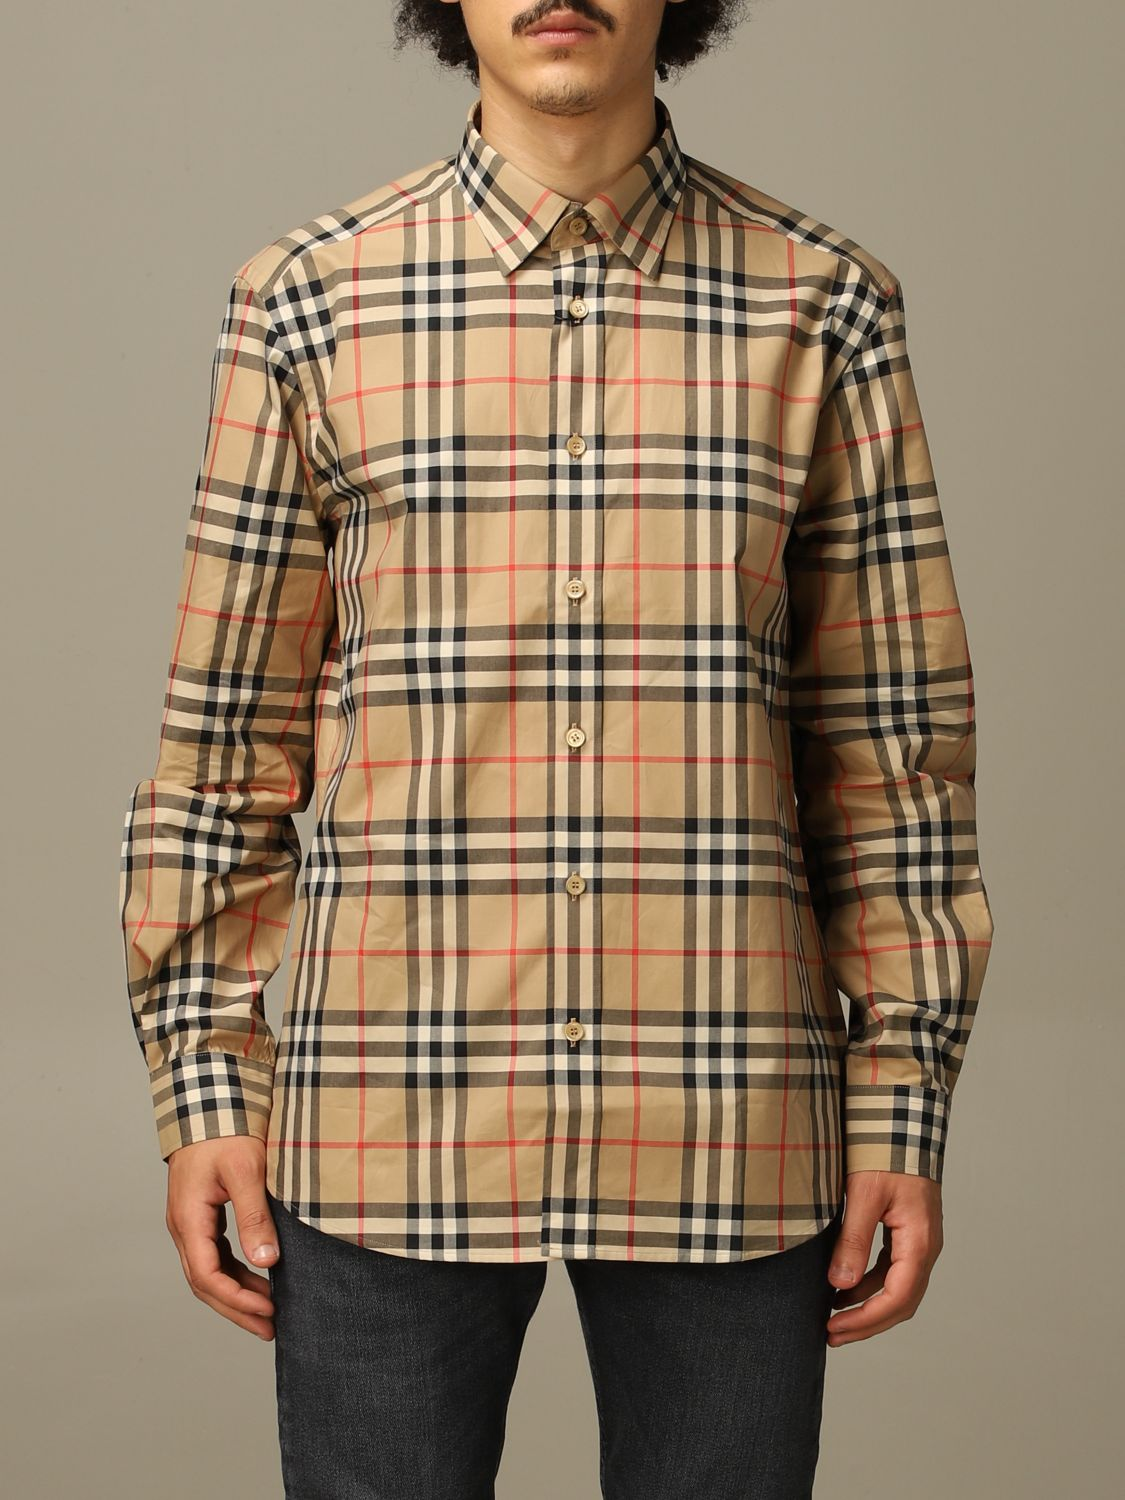 Shirt Burberry: Caxton Burberry shirt in cotton poplin with check pattern beige 1